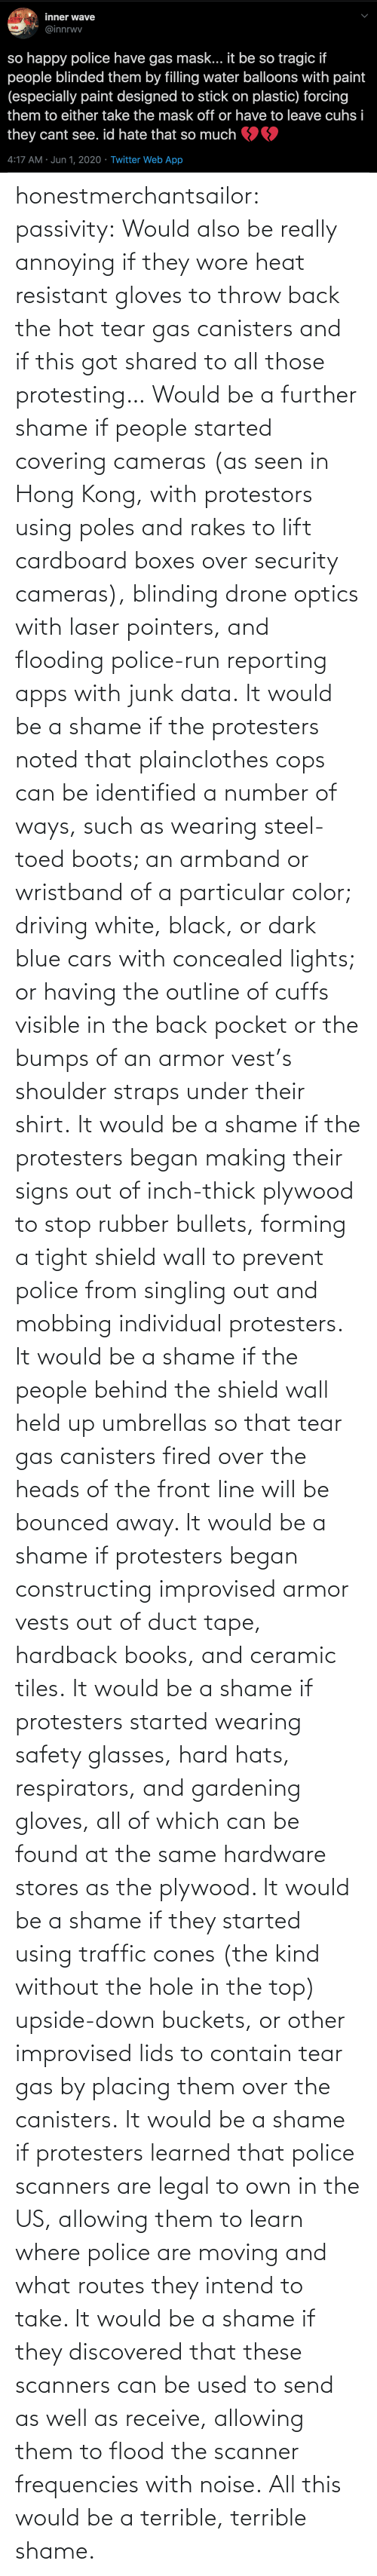 White: honestmerchantsailor:  passivity: Would also be really annoying if they wore heat resistant gloves to throw back the hot tear gas canisters and if this got shared to all those protesting… Would be a further shame if people started covering cameras (as seen in Hong Kong, with protestors using poles and rakes to lift cardboard boxes over security cameras), blinding drone optics with laser pointers, and flooding police-run reporting apps with junk data. It would be a shame if the protesters noted that plainclothes cops can be identified a number of ways, such as wearing steel-toed boots; an armband or wristband of a particular color; driving white, black, or dark blue cars with concealed lights; or having the outline of cuffs visible in the back pocket or the bumps of an armor vest's shoulder straps under their shirt. It would be a shame if the protesters began making their signs out of inch-thick plywood to stop rubber bullets, forming a tight shield wall to prevent police from singling out and mobbing individual protesters. It would be a shame if the people behind the shield wall held up umbrellas so that tear gas canisters fired over the heads of the front line will be bounced away. It would be a shame if protesters began constructing improvised armor vests out of duct tape, hardback books, and ceramic tiles. It would be a shame if protesters started wearing safety glasses, hard hats, respirators, and gardening gloves, all of which can be found at the same hardware stores as the plywood. It would be a shame if they started using traffic cones (the kind without the hole in the top) upside-down buckets, or other improvised lids to contain tear gas by placing them over the canisters. It would be a shame if protesters learned that police scanners are legal to own in the US, allowing them to learn where police are moving and what routes they intend to take. It would be a shame if they discovered that these scanners can be used to send as well as receive, allowing them to flood the scanner frequencies with noise. All this would be a terrible, terrible shame.